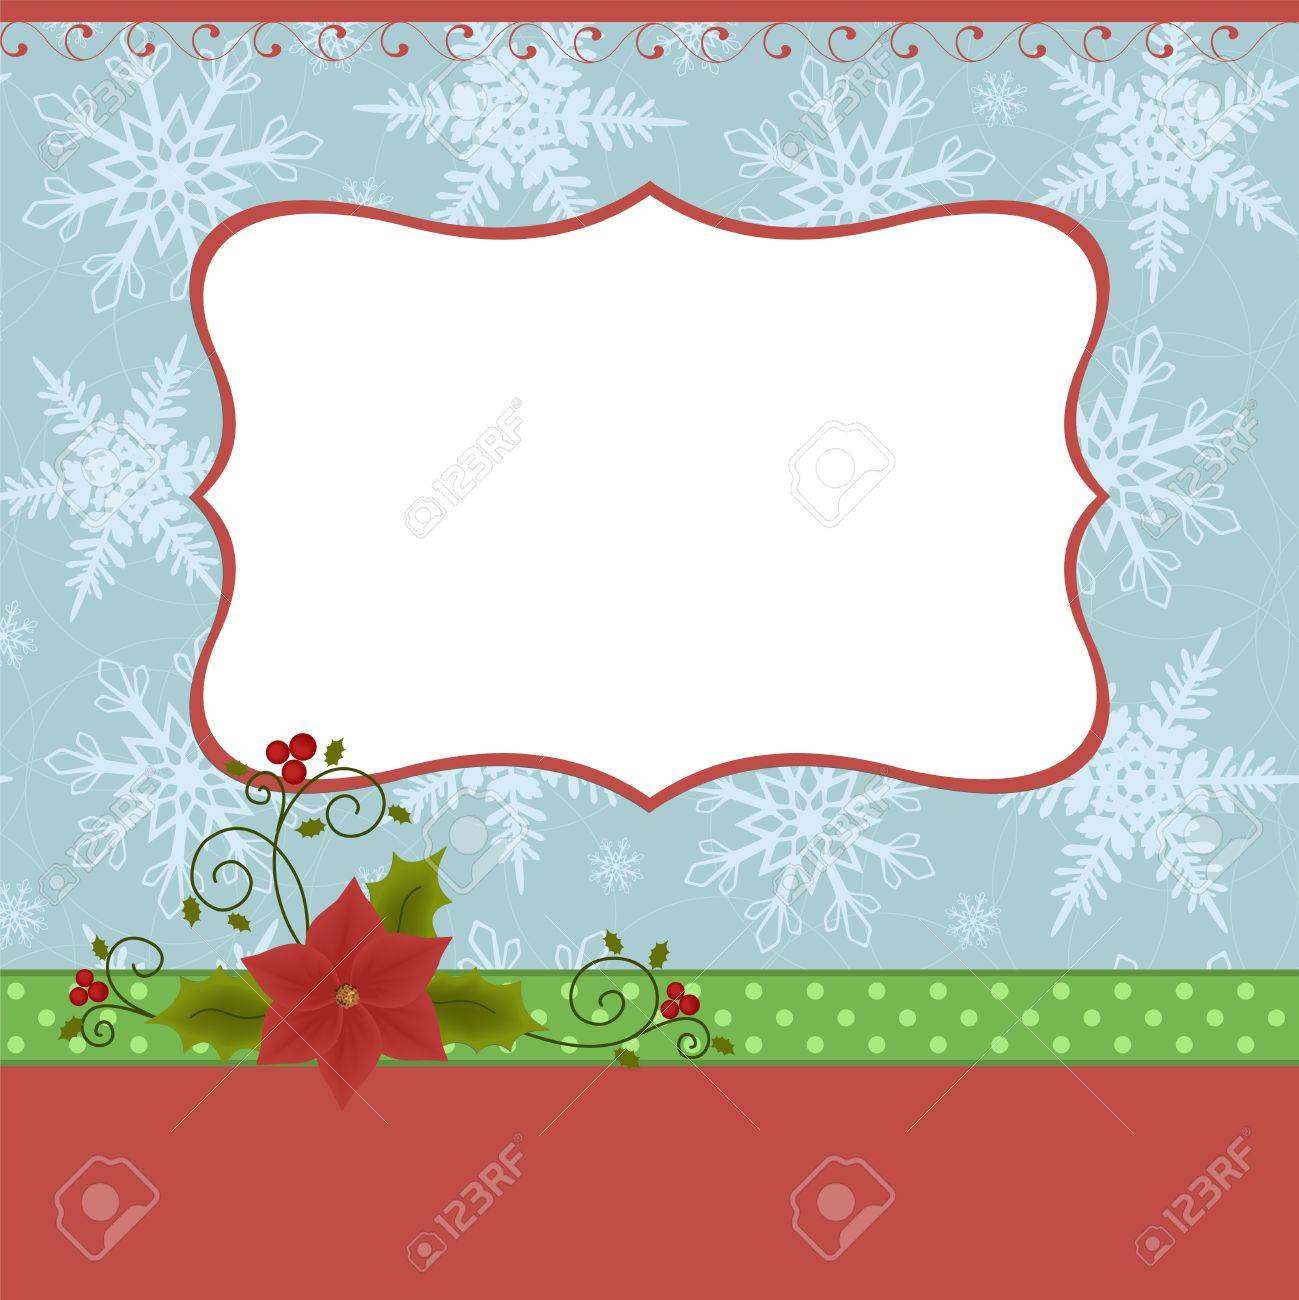 Blank Template For Christmas Greetings Card Postcard Or Photo – Free Blank Greeting Card Templates